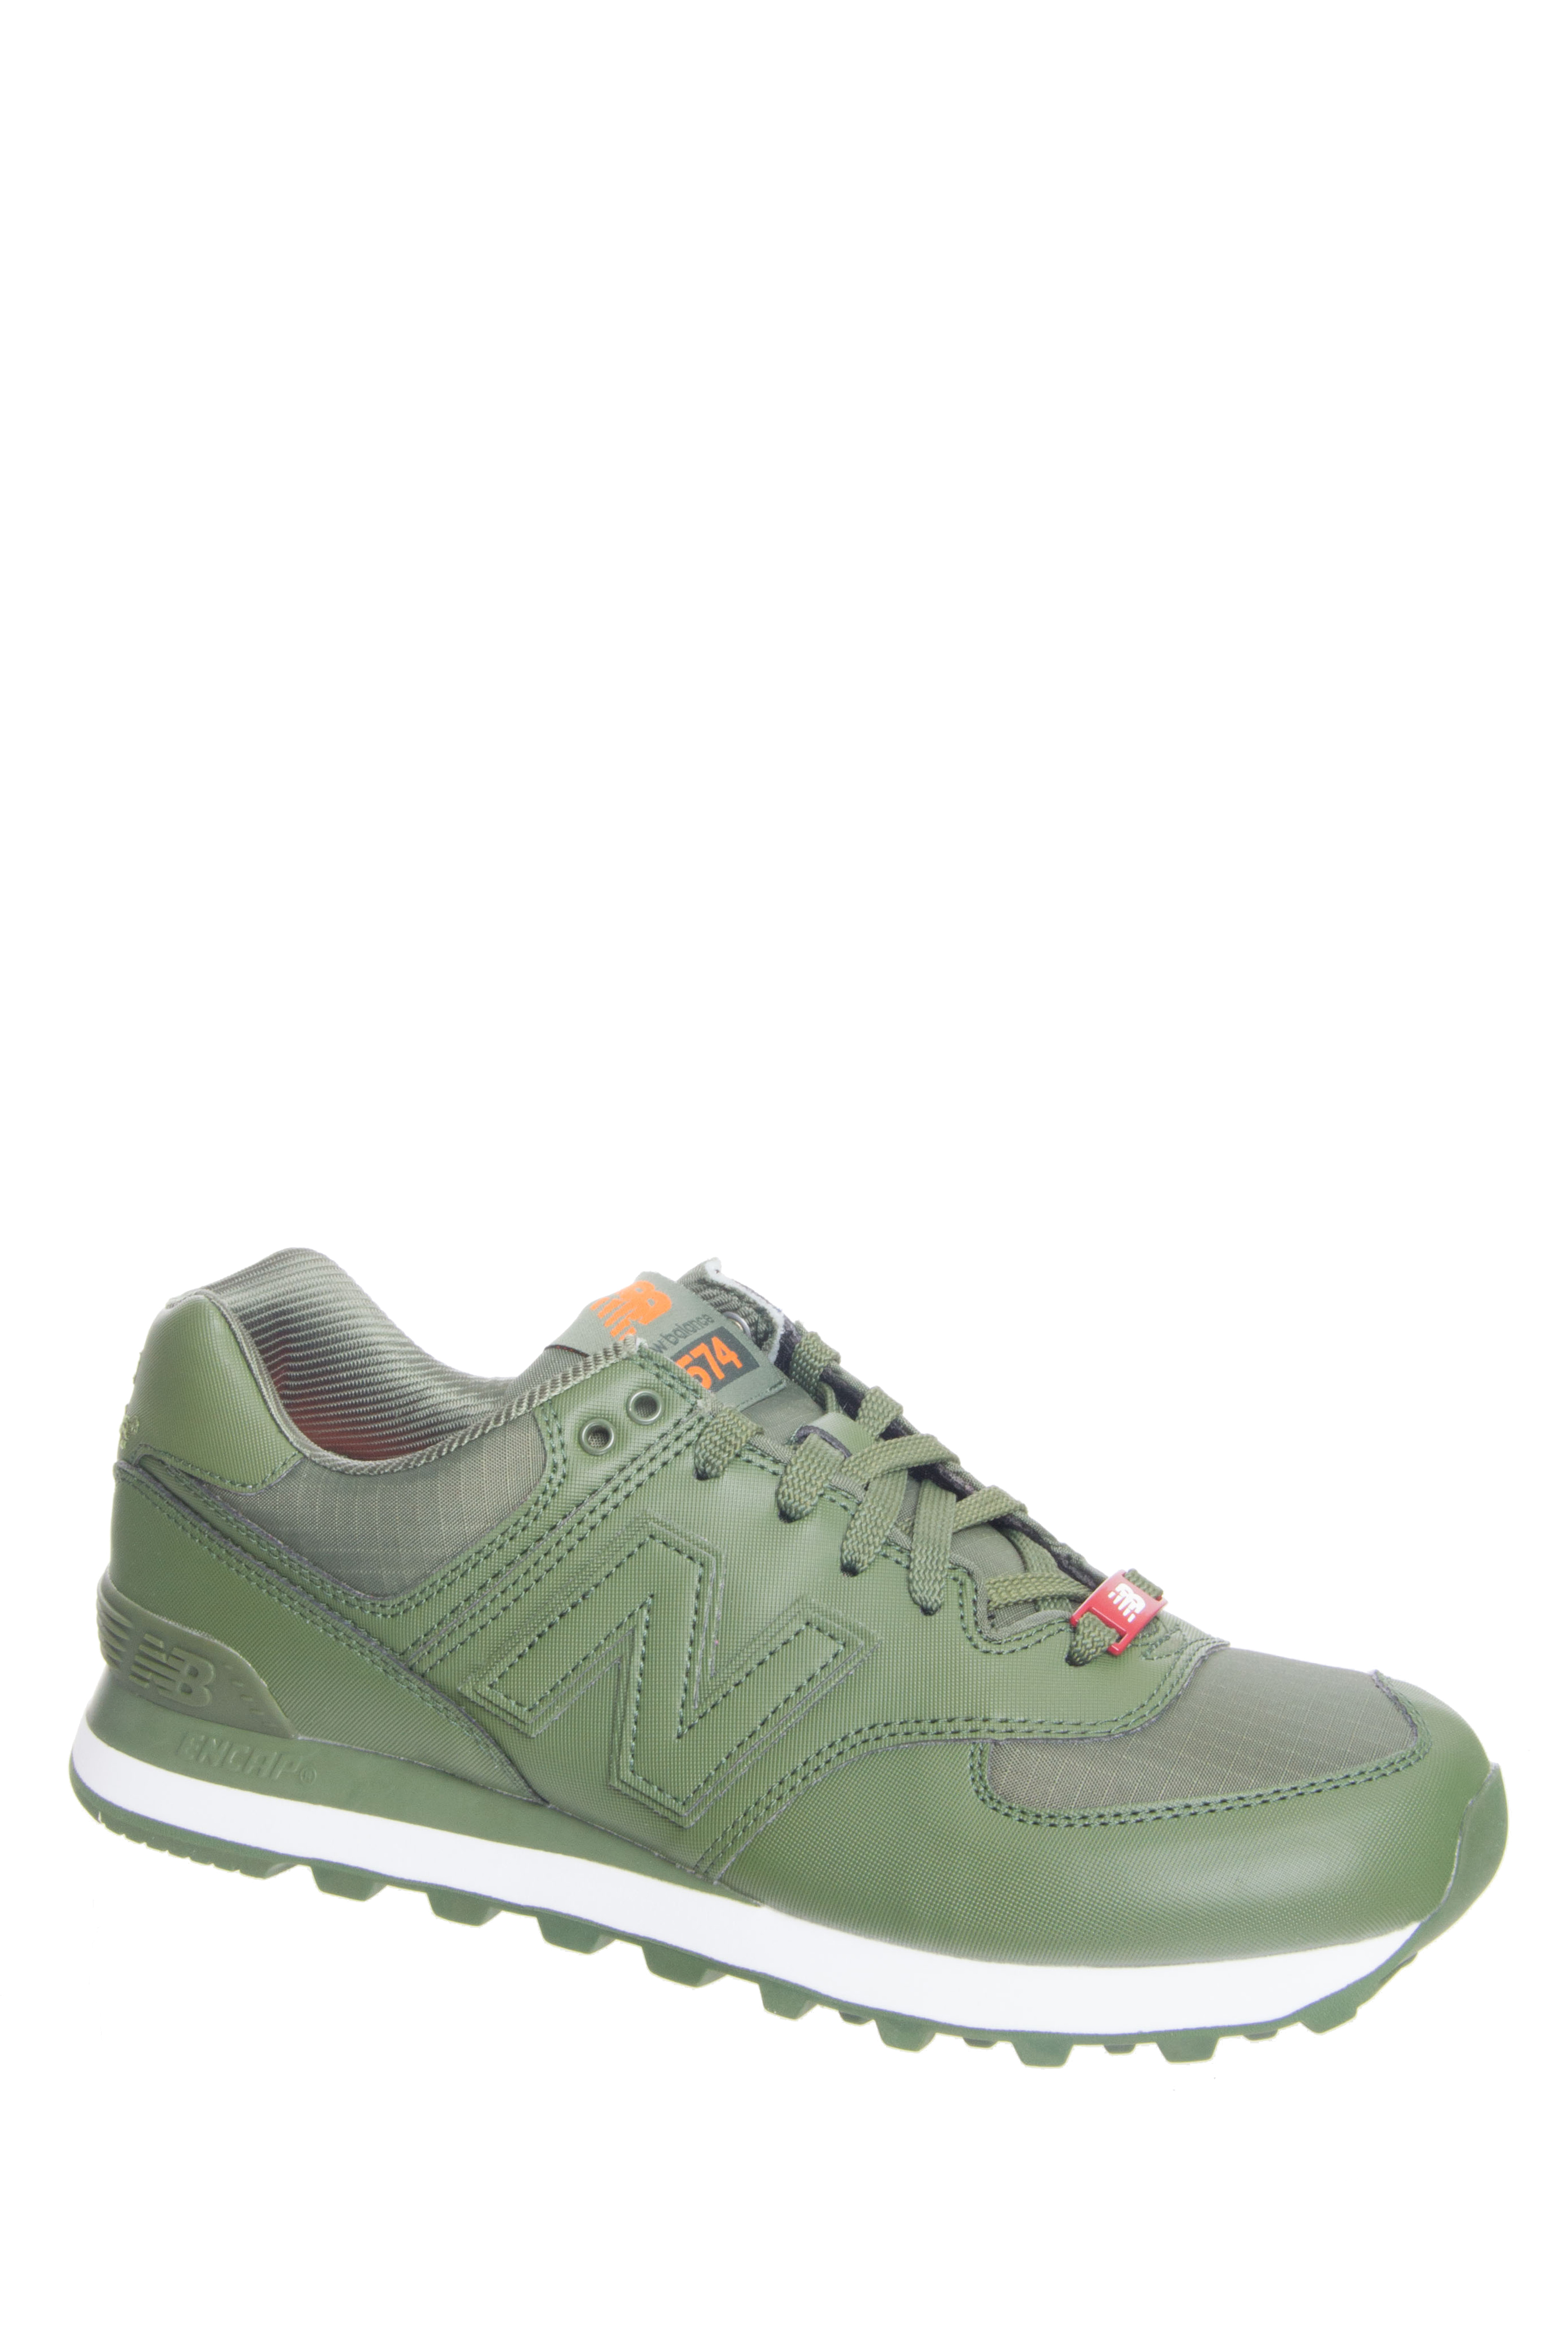 New Balance Men's 574 Flight Jacket Pack Low Top Sneaker - Green